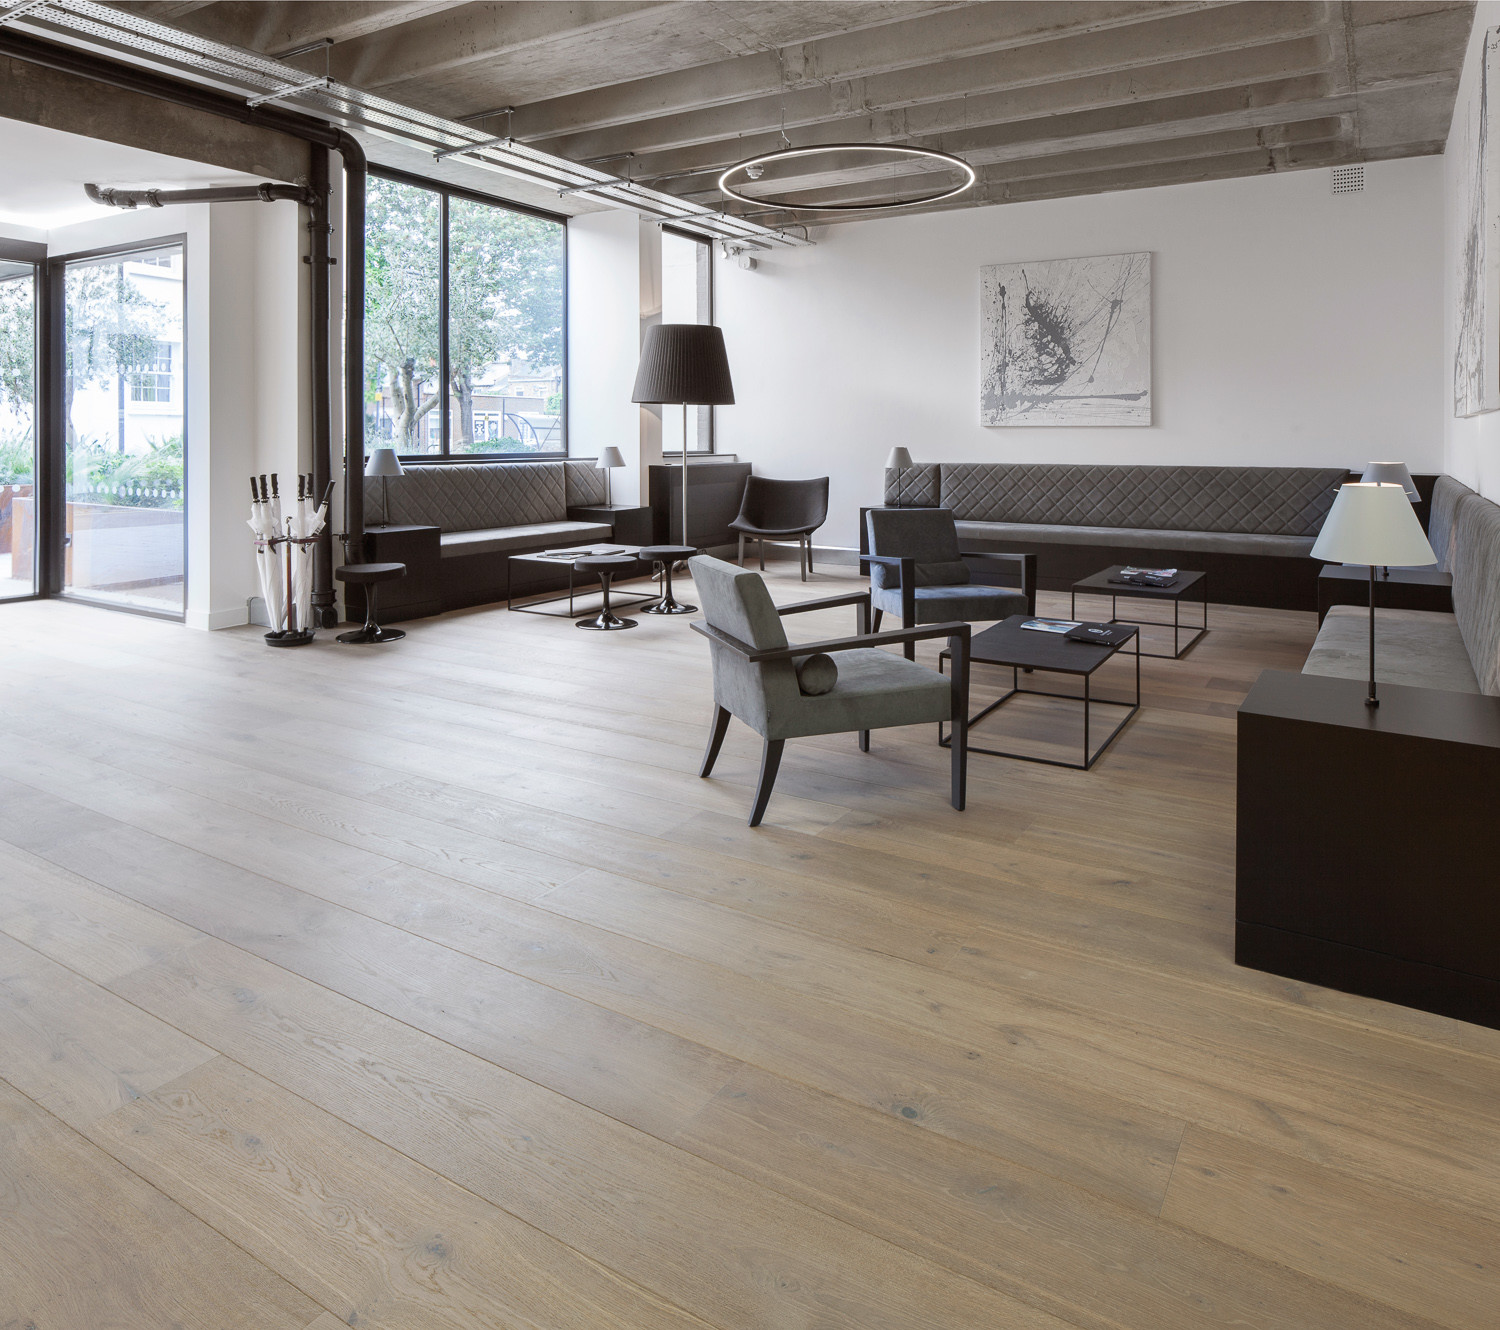 discount hardwood floors molding los angeles of blog archives the new reclaimed flooring companythe new inside the report indicated that 82 of workers who were employed in places with eight or more wood surfaces had higher personal productivity mood concentration